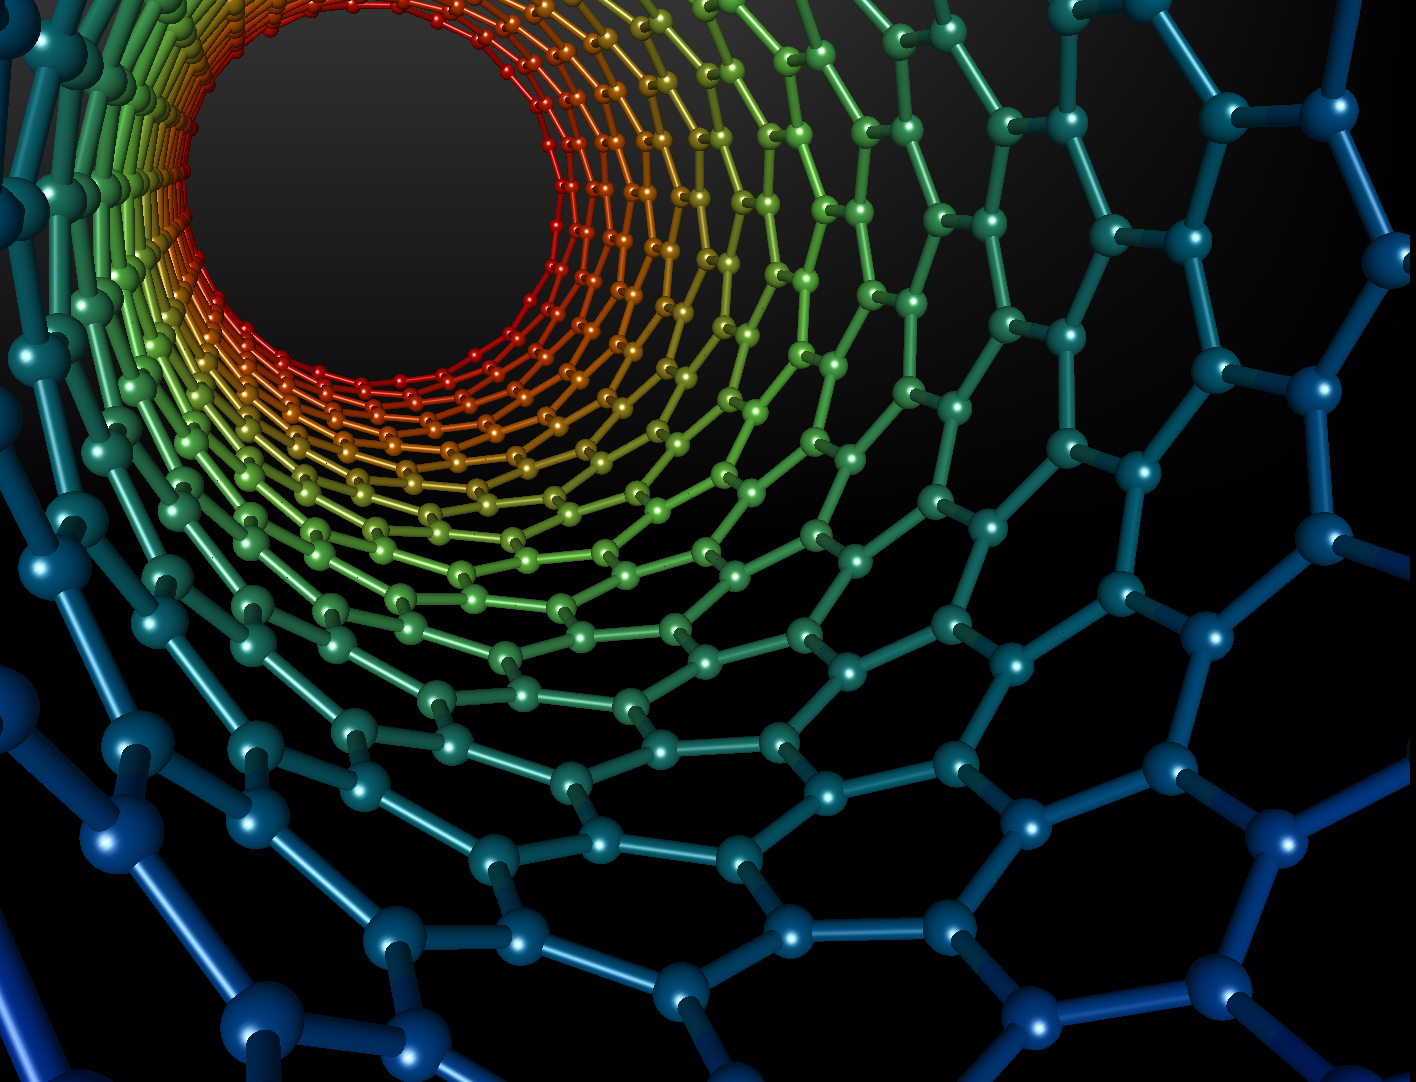 Making the most of twists and turns: Harvesting mechanical energy with carbon nanotube yarns